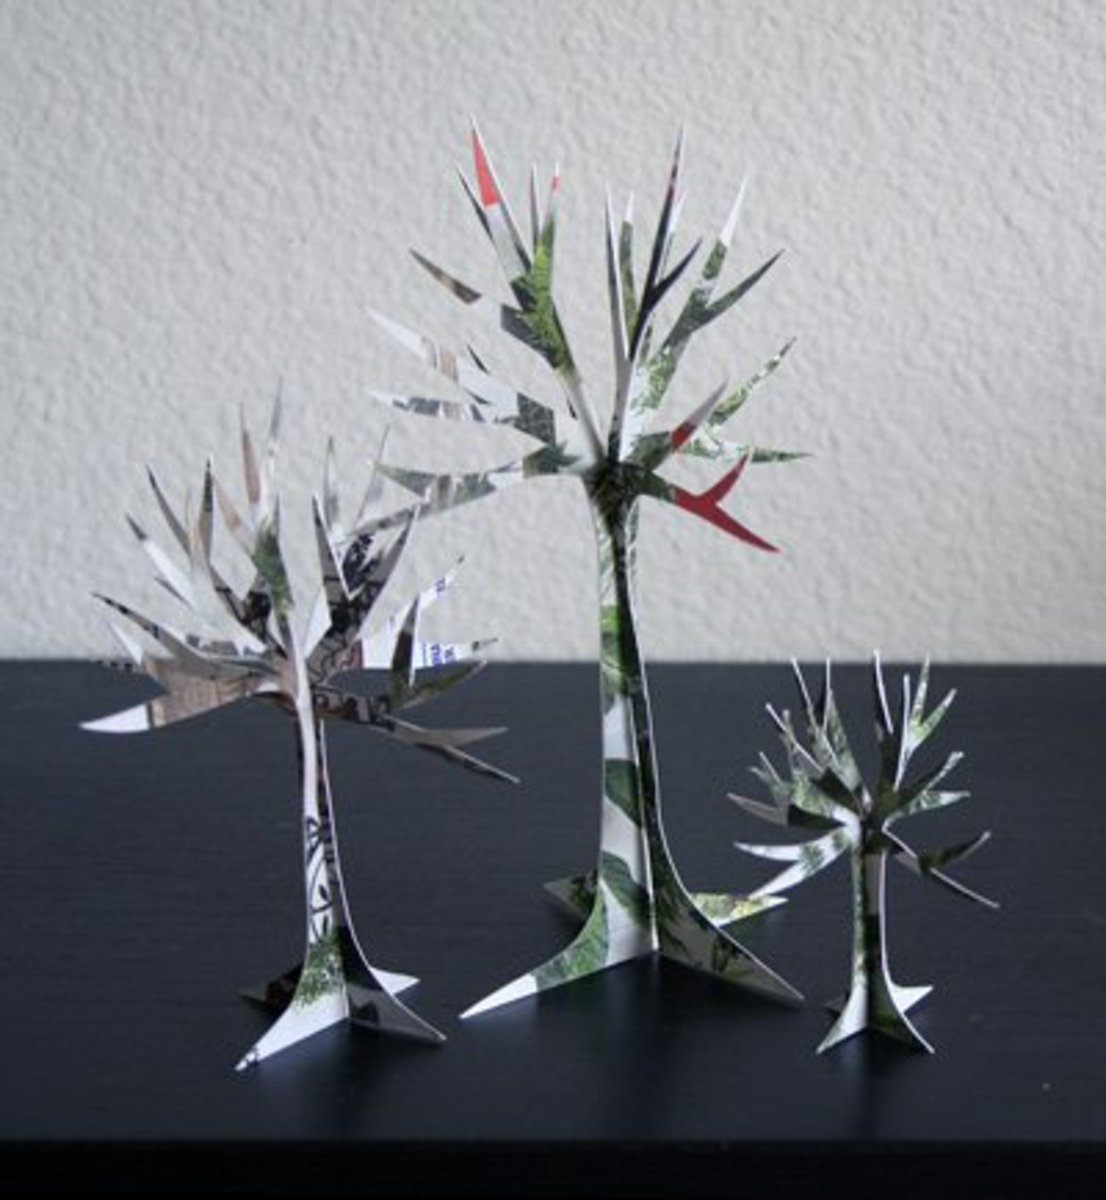 http://alittlehut.blogspot.com/2007/08/recycled-project-no-6-junk-mail-trees.html - link no longer active